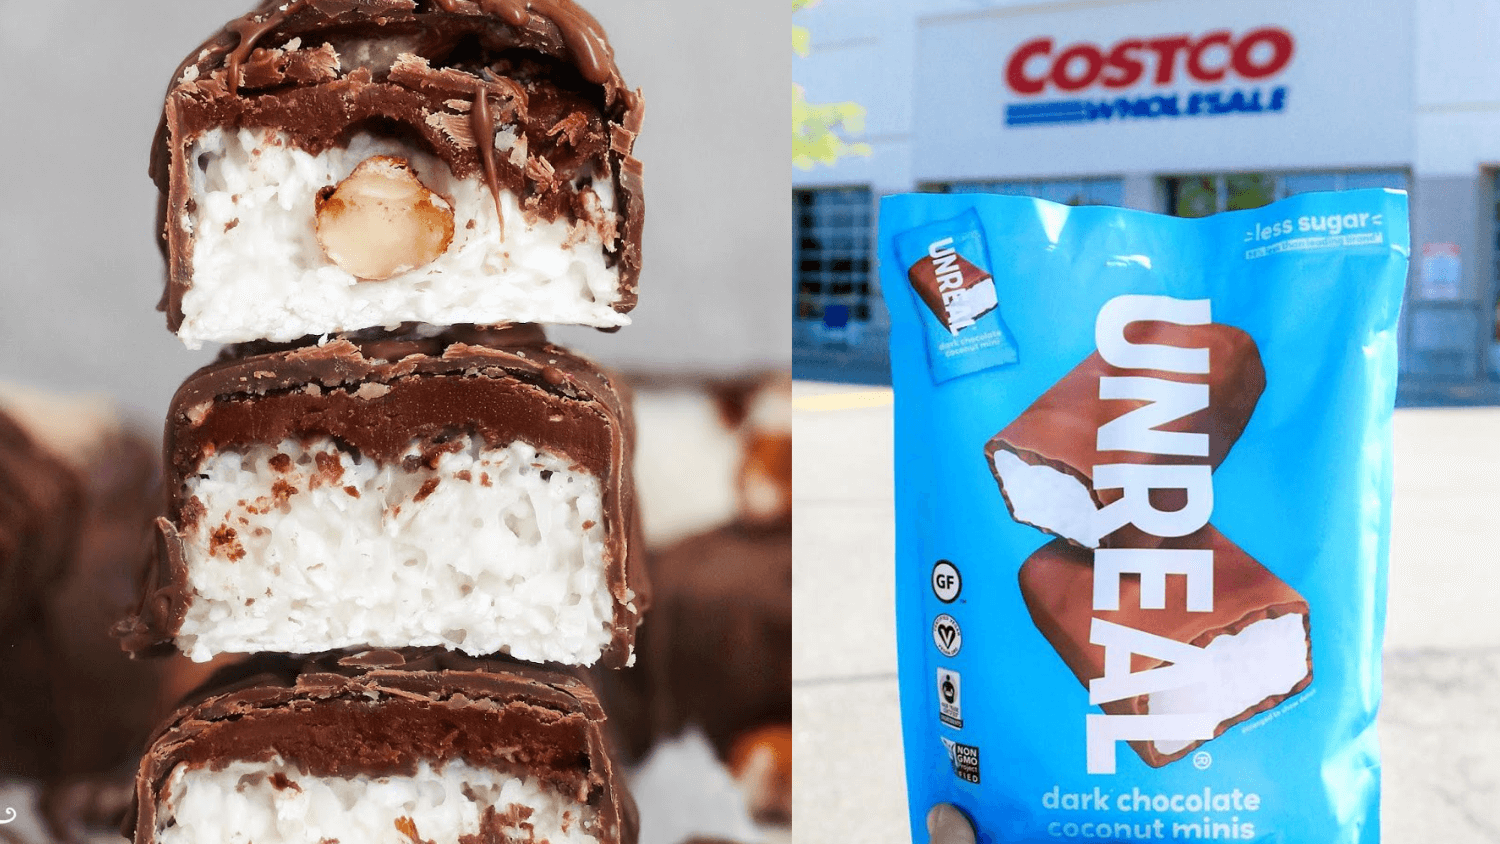 Costco Launches Vegan 'Bounty' Chocolate Bars